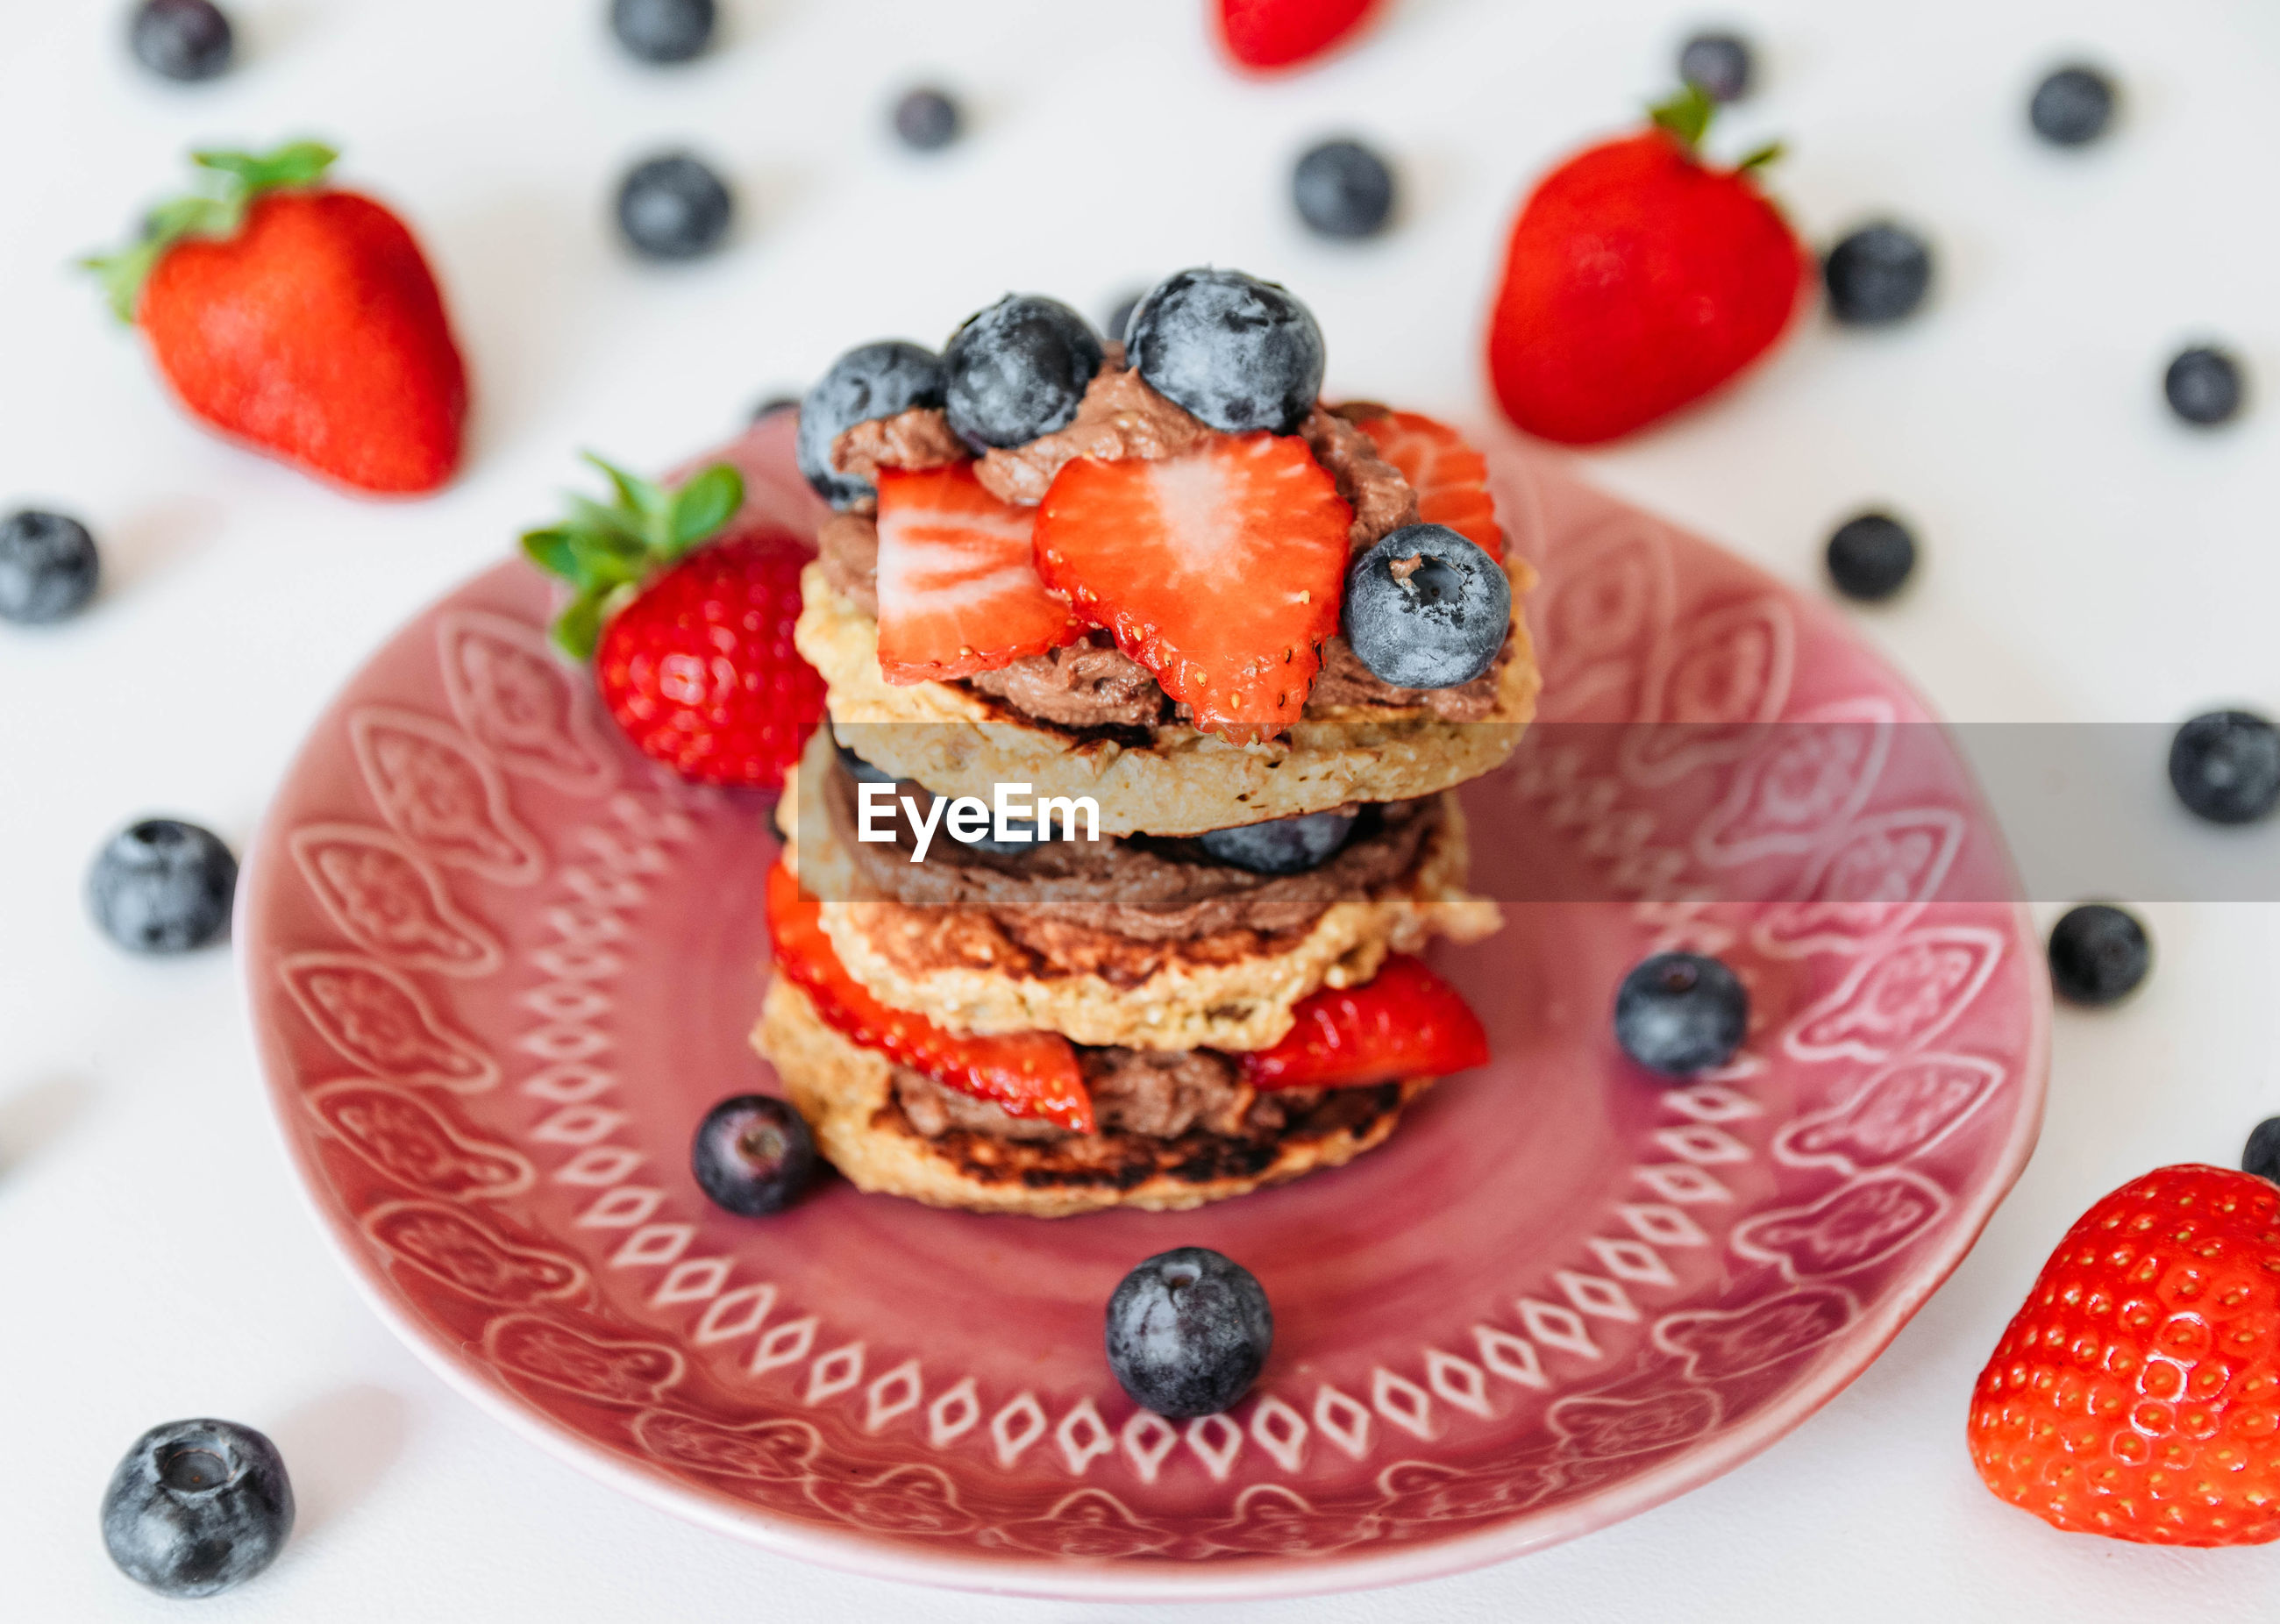 Banana and oat pancakes with chocolate cream, strawberries and blueberries.